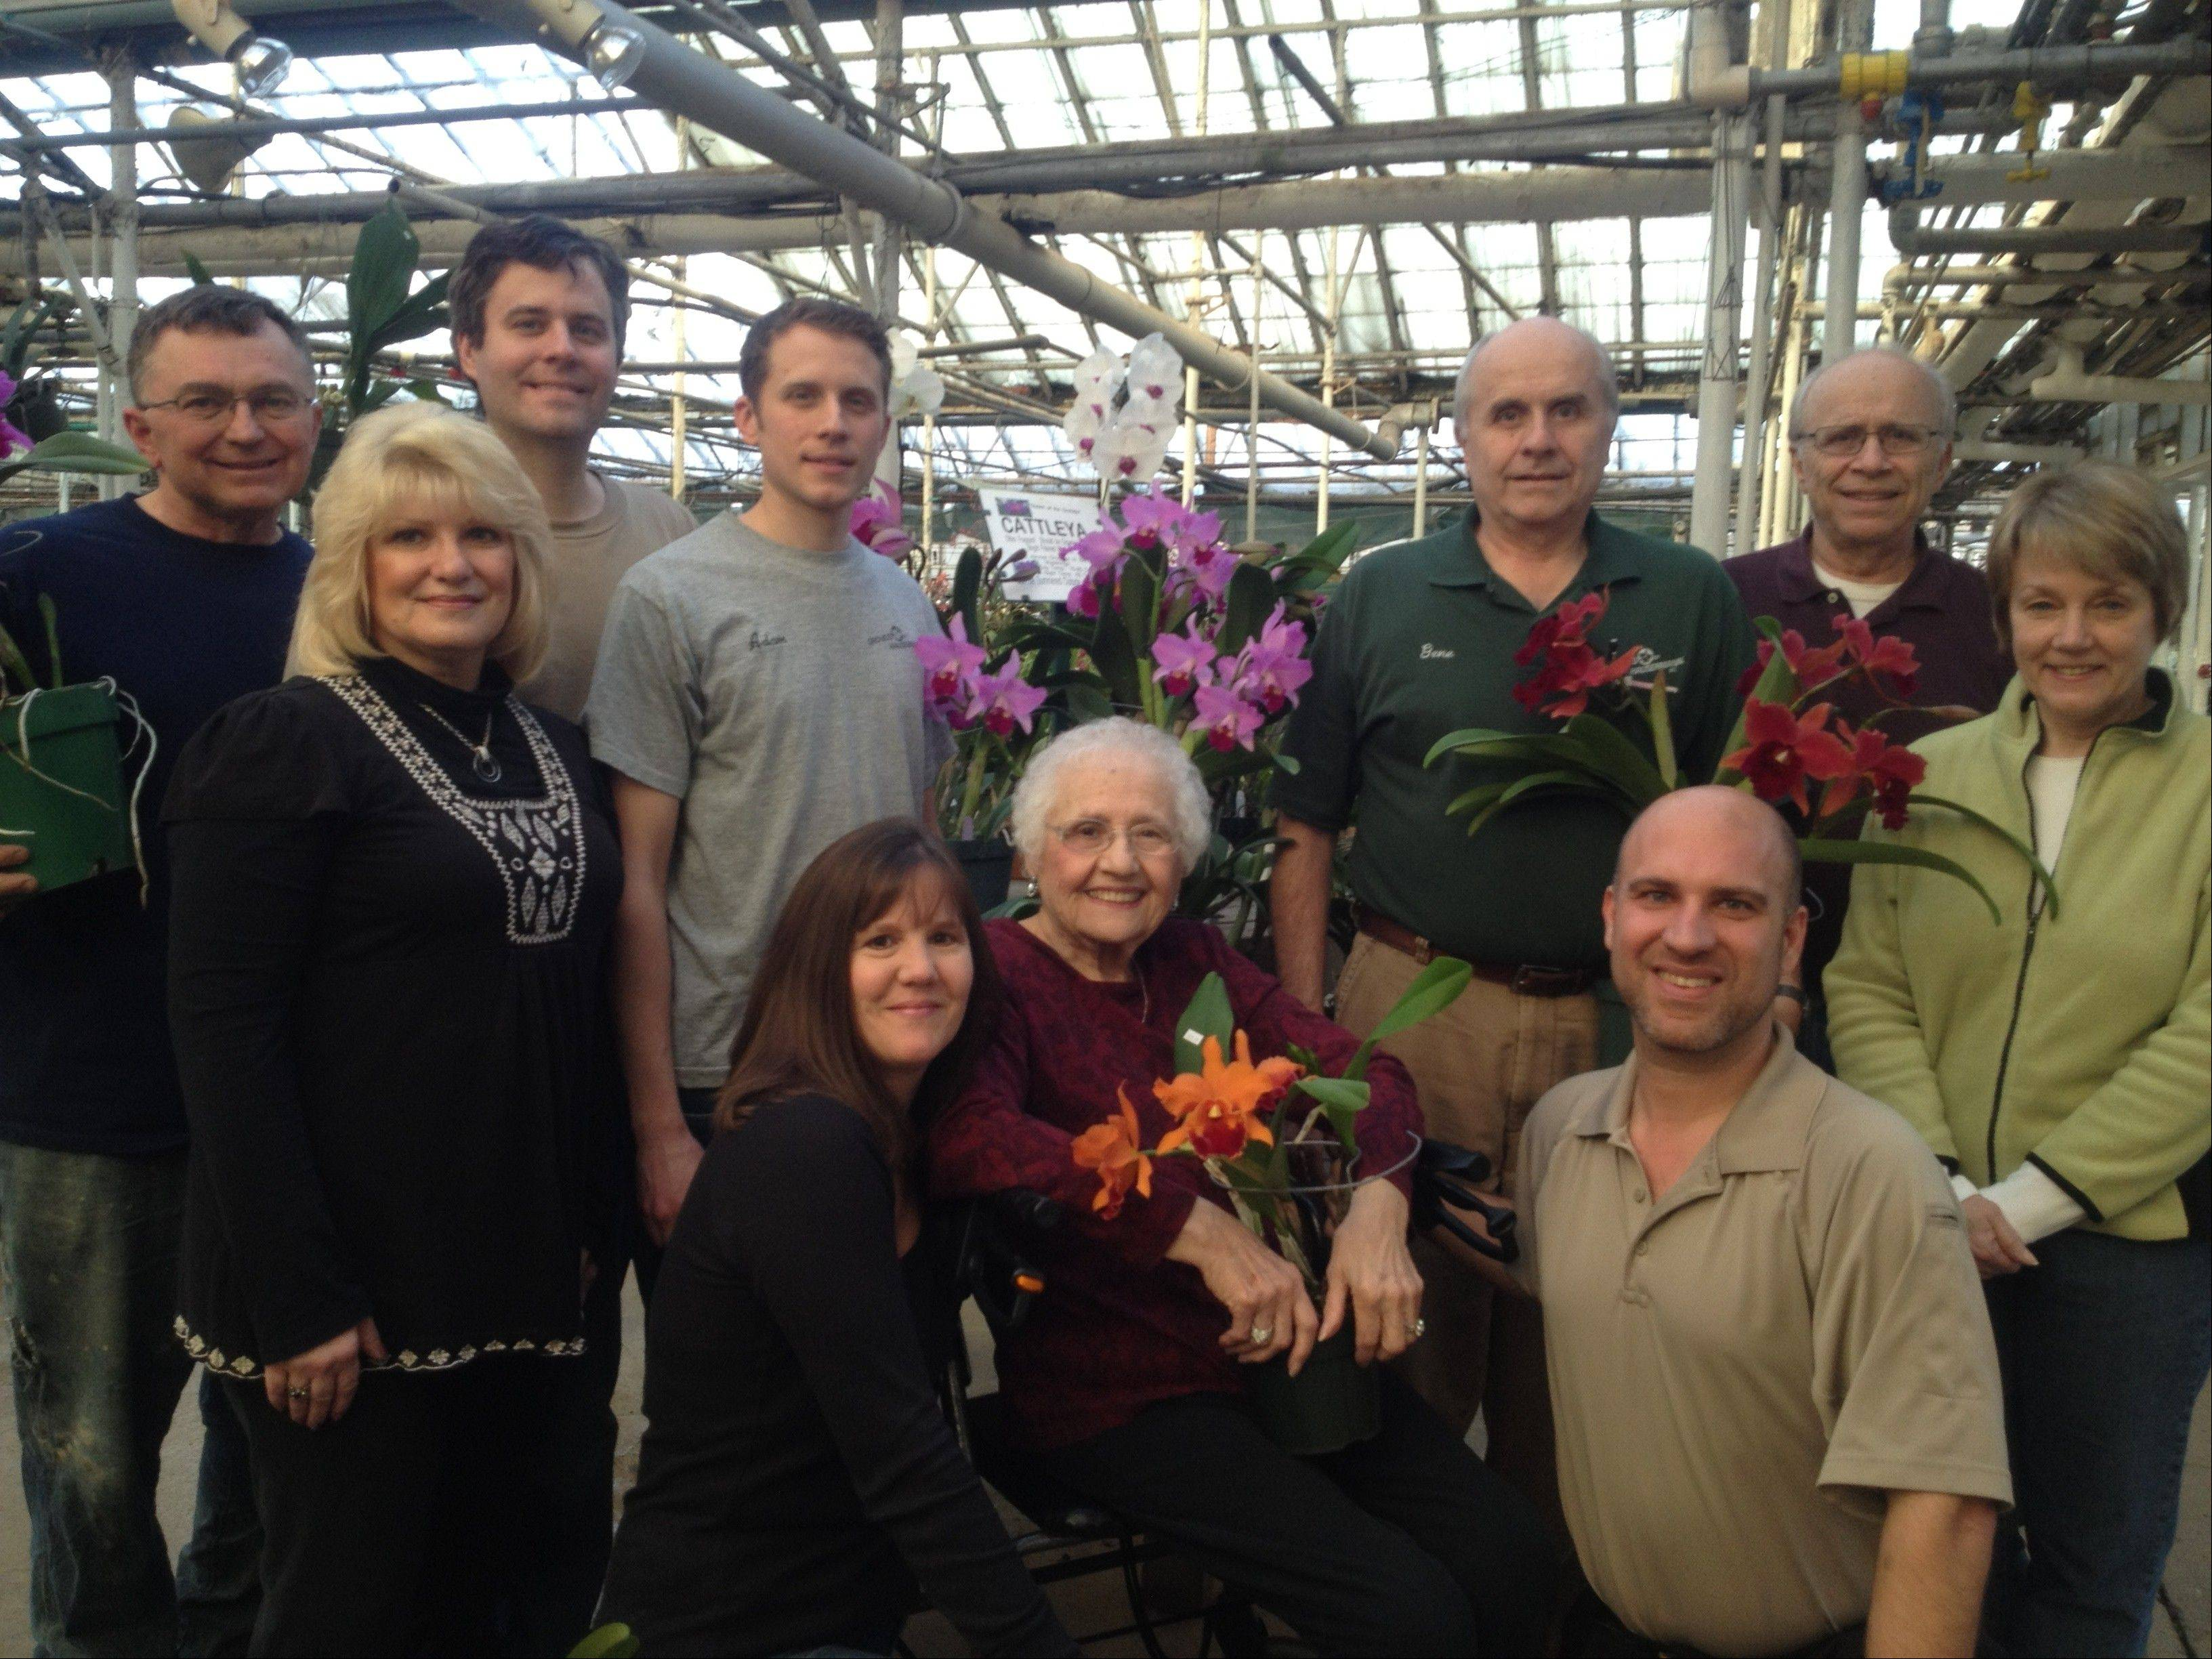 The third, fourth and fifth generation of Hausermanns are involved in running Orchids by Hausermann in Villa Park. They include, from left, Pat Funke, Melinda Funke, Andy Hausermann, Adam Hausermann, Kellie Wheeler, Irene Finney, Gene Hausermann, Bryan Wheeler, Jim Hausermann and Carol Hausermann.